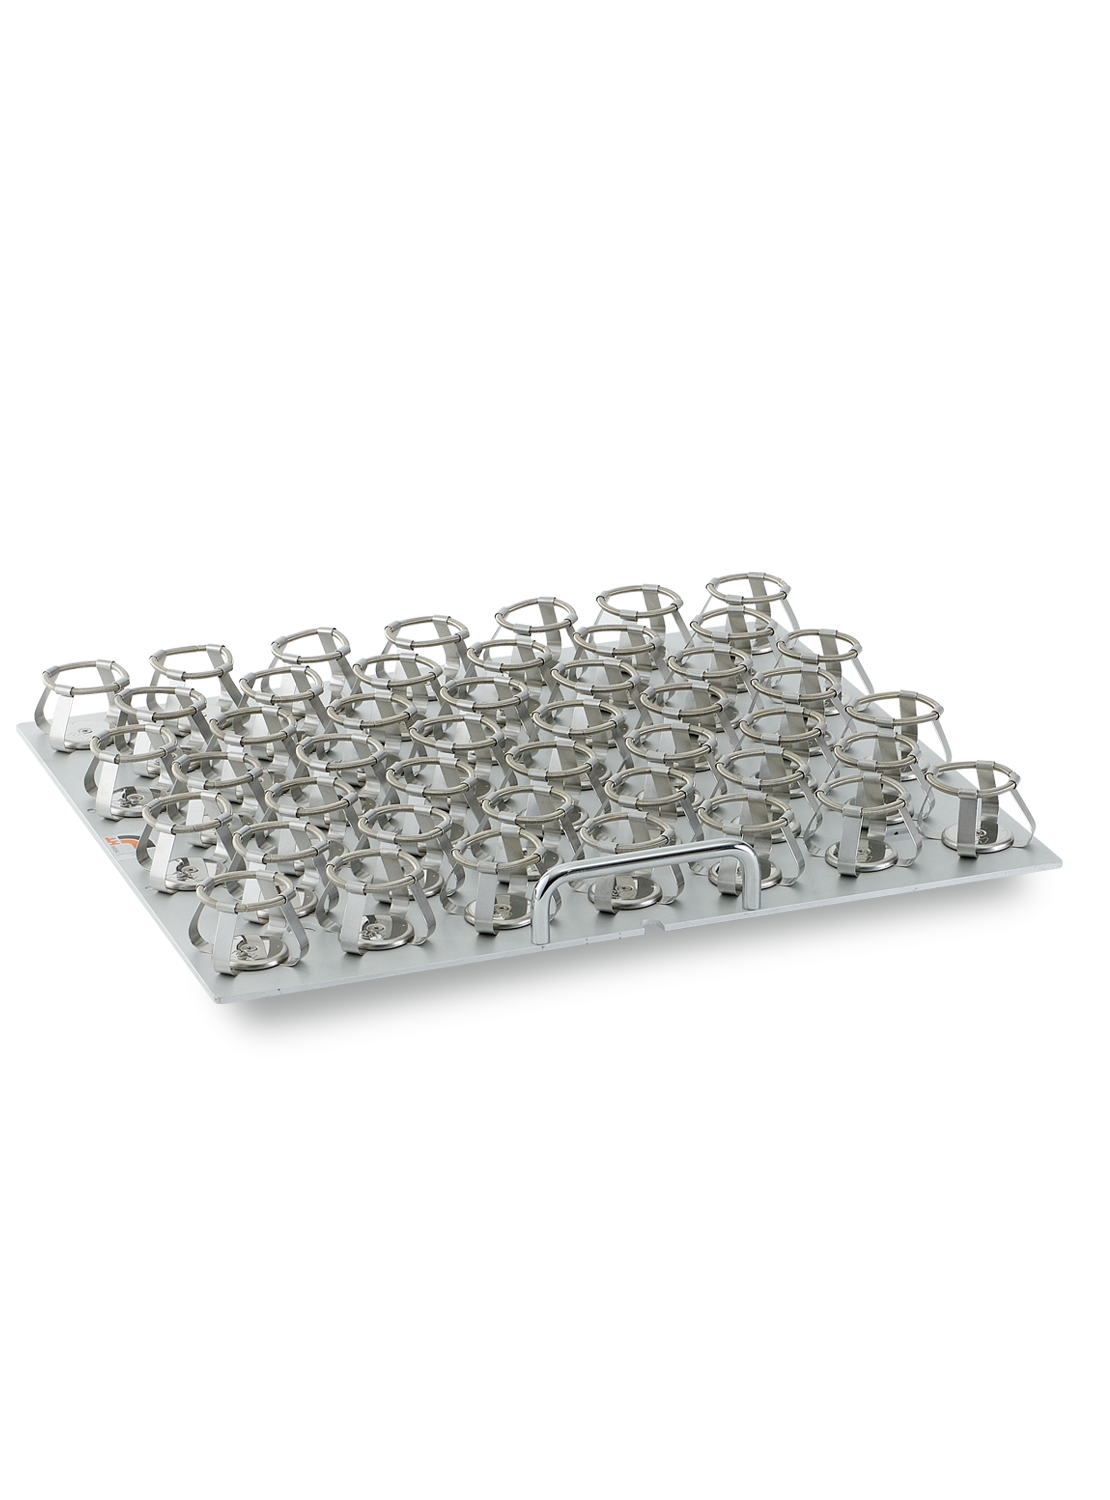 Fixed-configuration trays